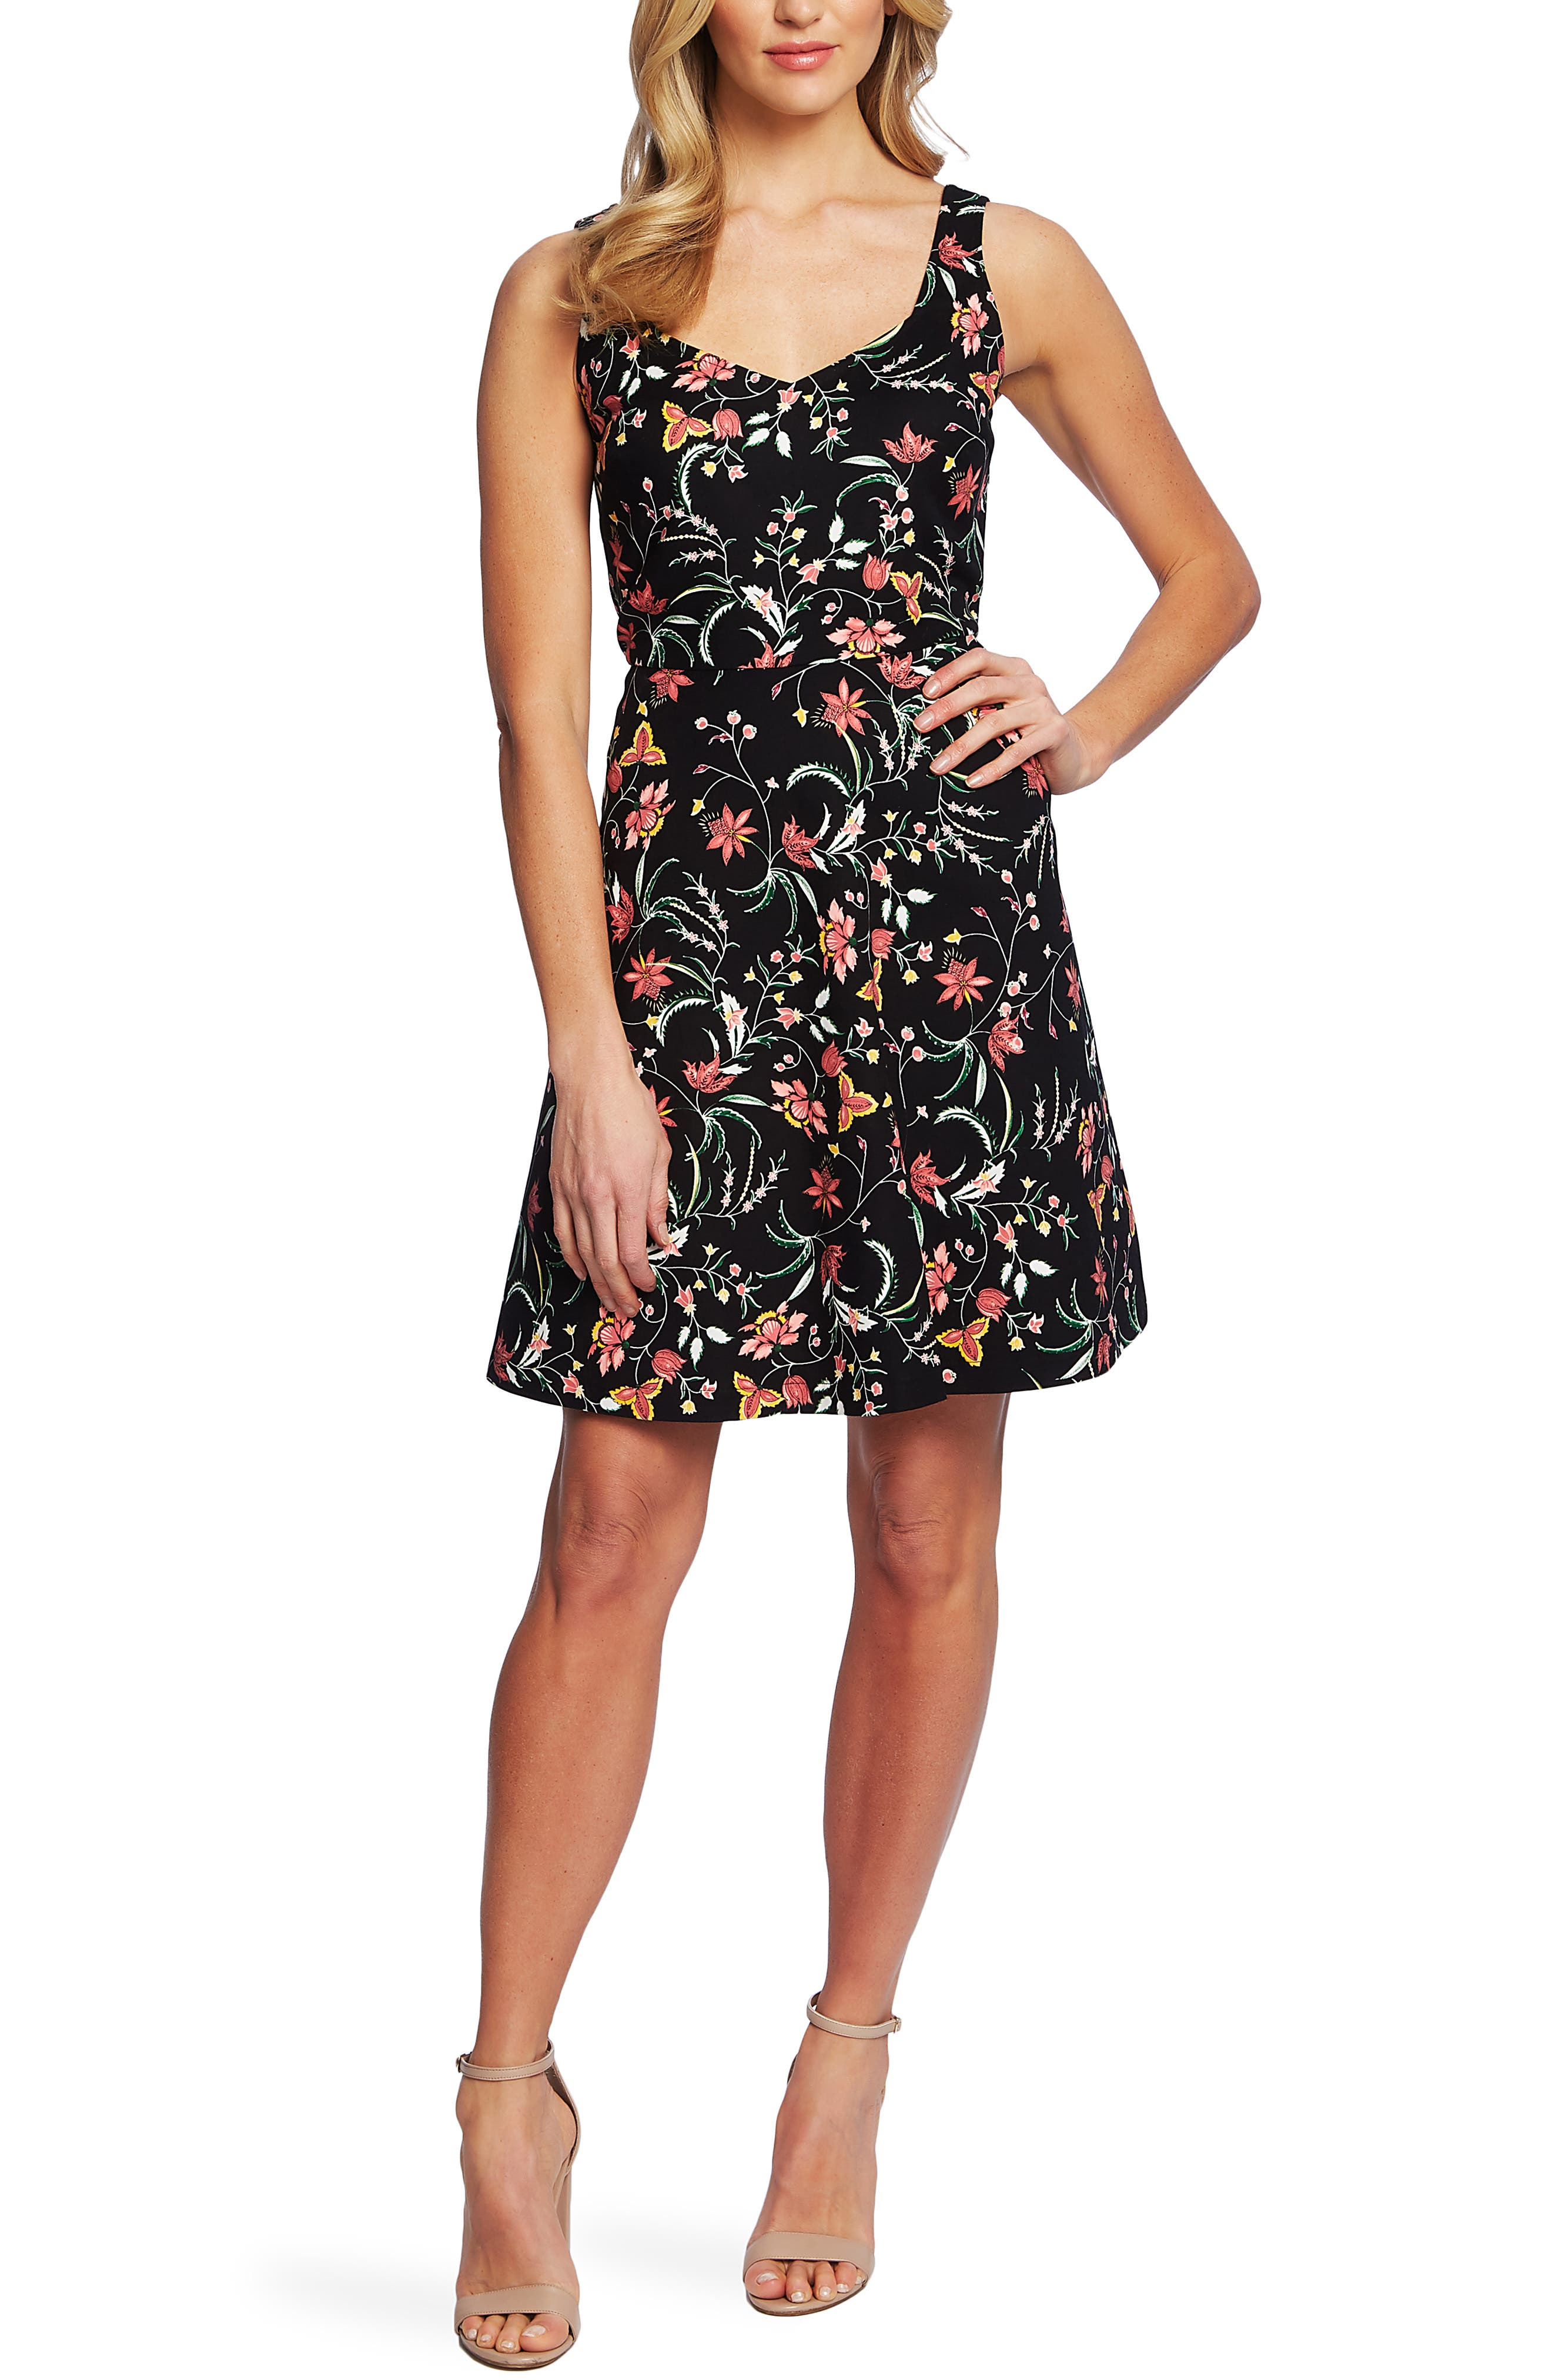 Cece Marrakesh Ink Floral Print Sleeveless Stretch Cotton Dress, Black